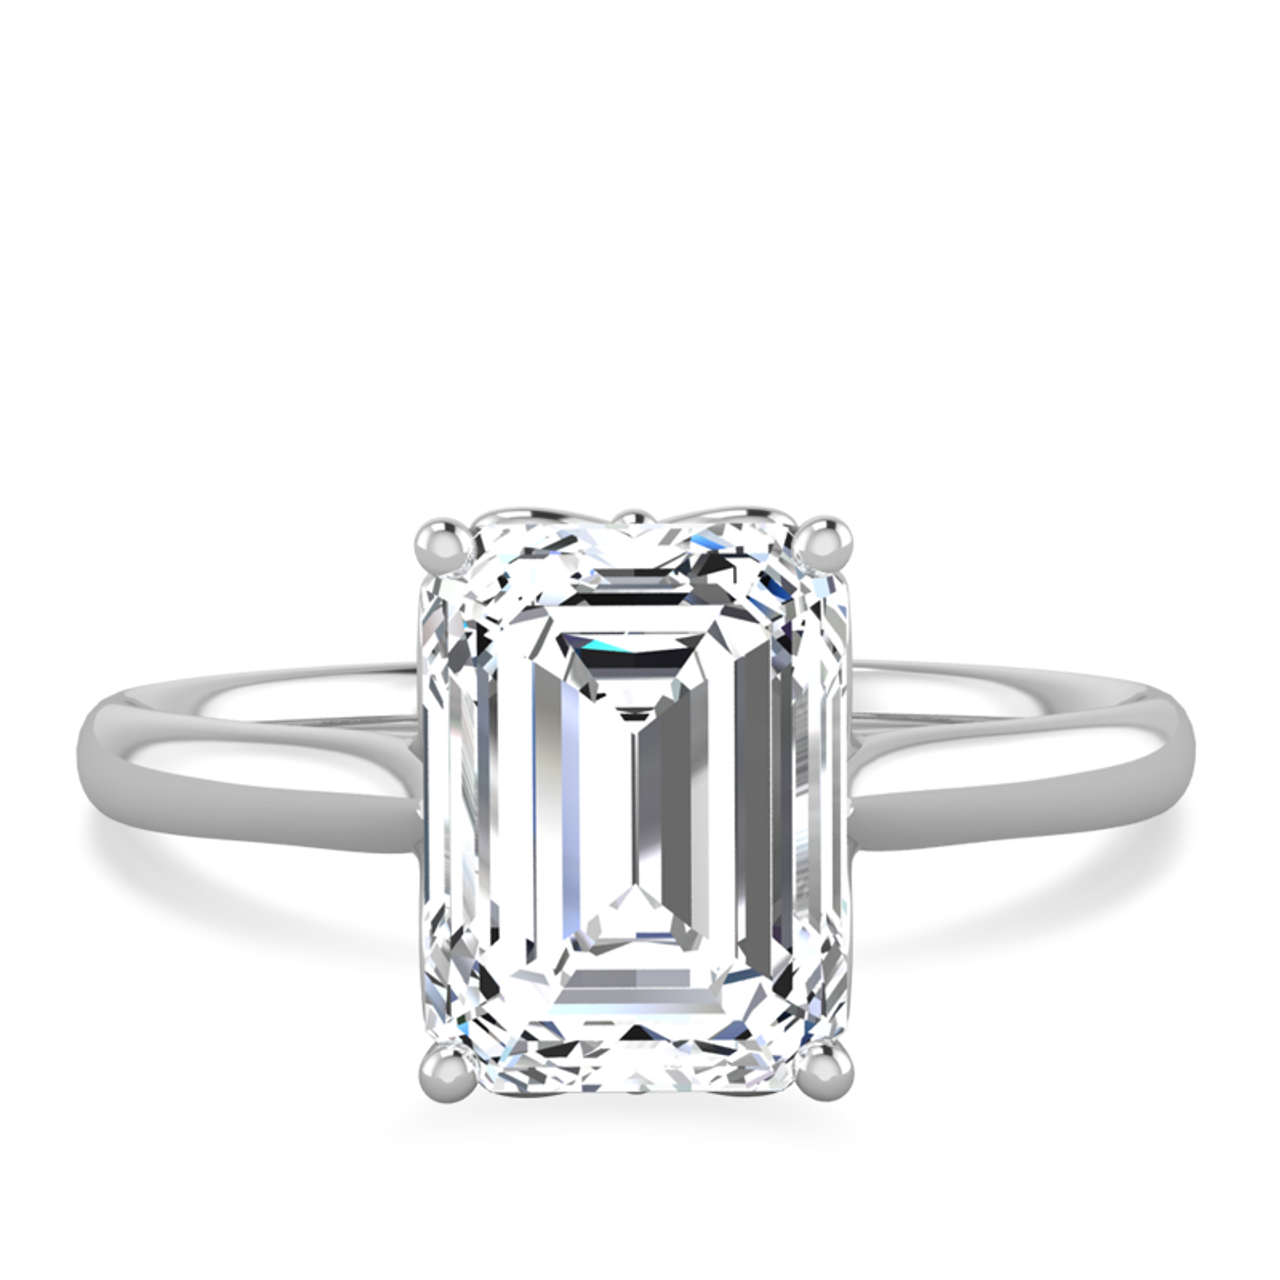 63a11271178d4 Lily Emerald Cut Engagement Ring